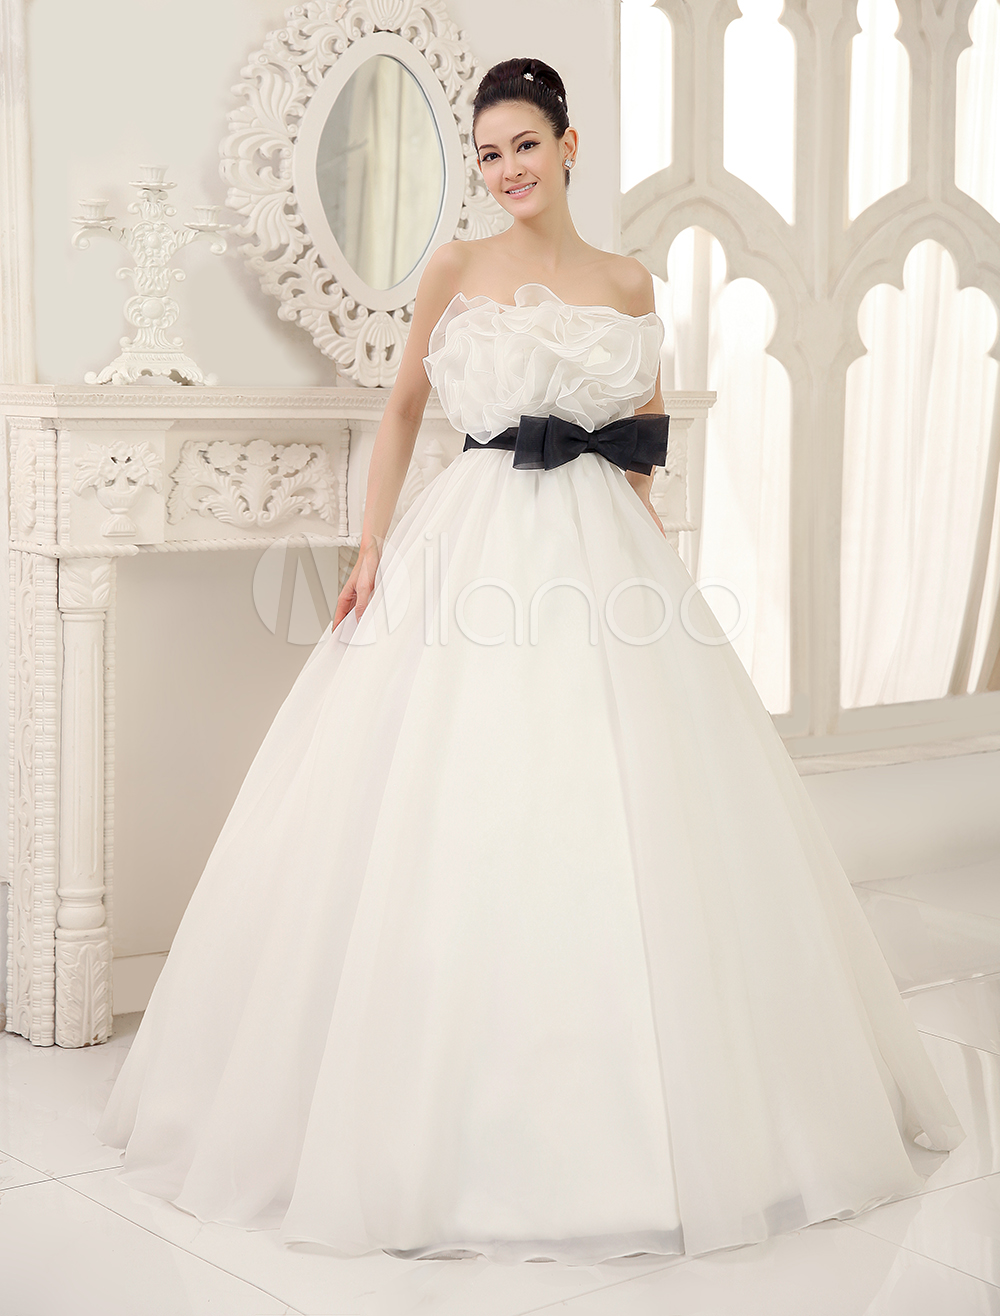 Ivory Ball Gown Wedding Dress with Black Sash and Strapless Bow